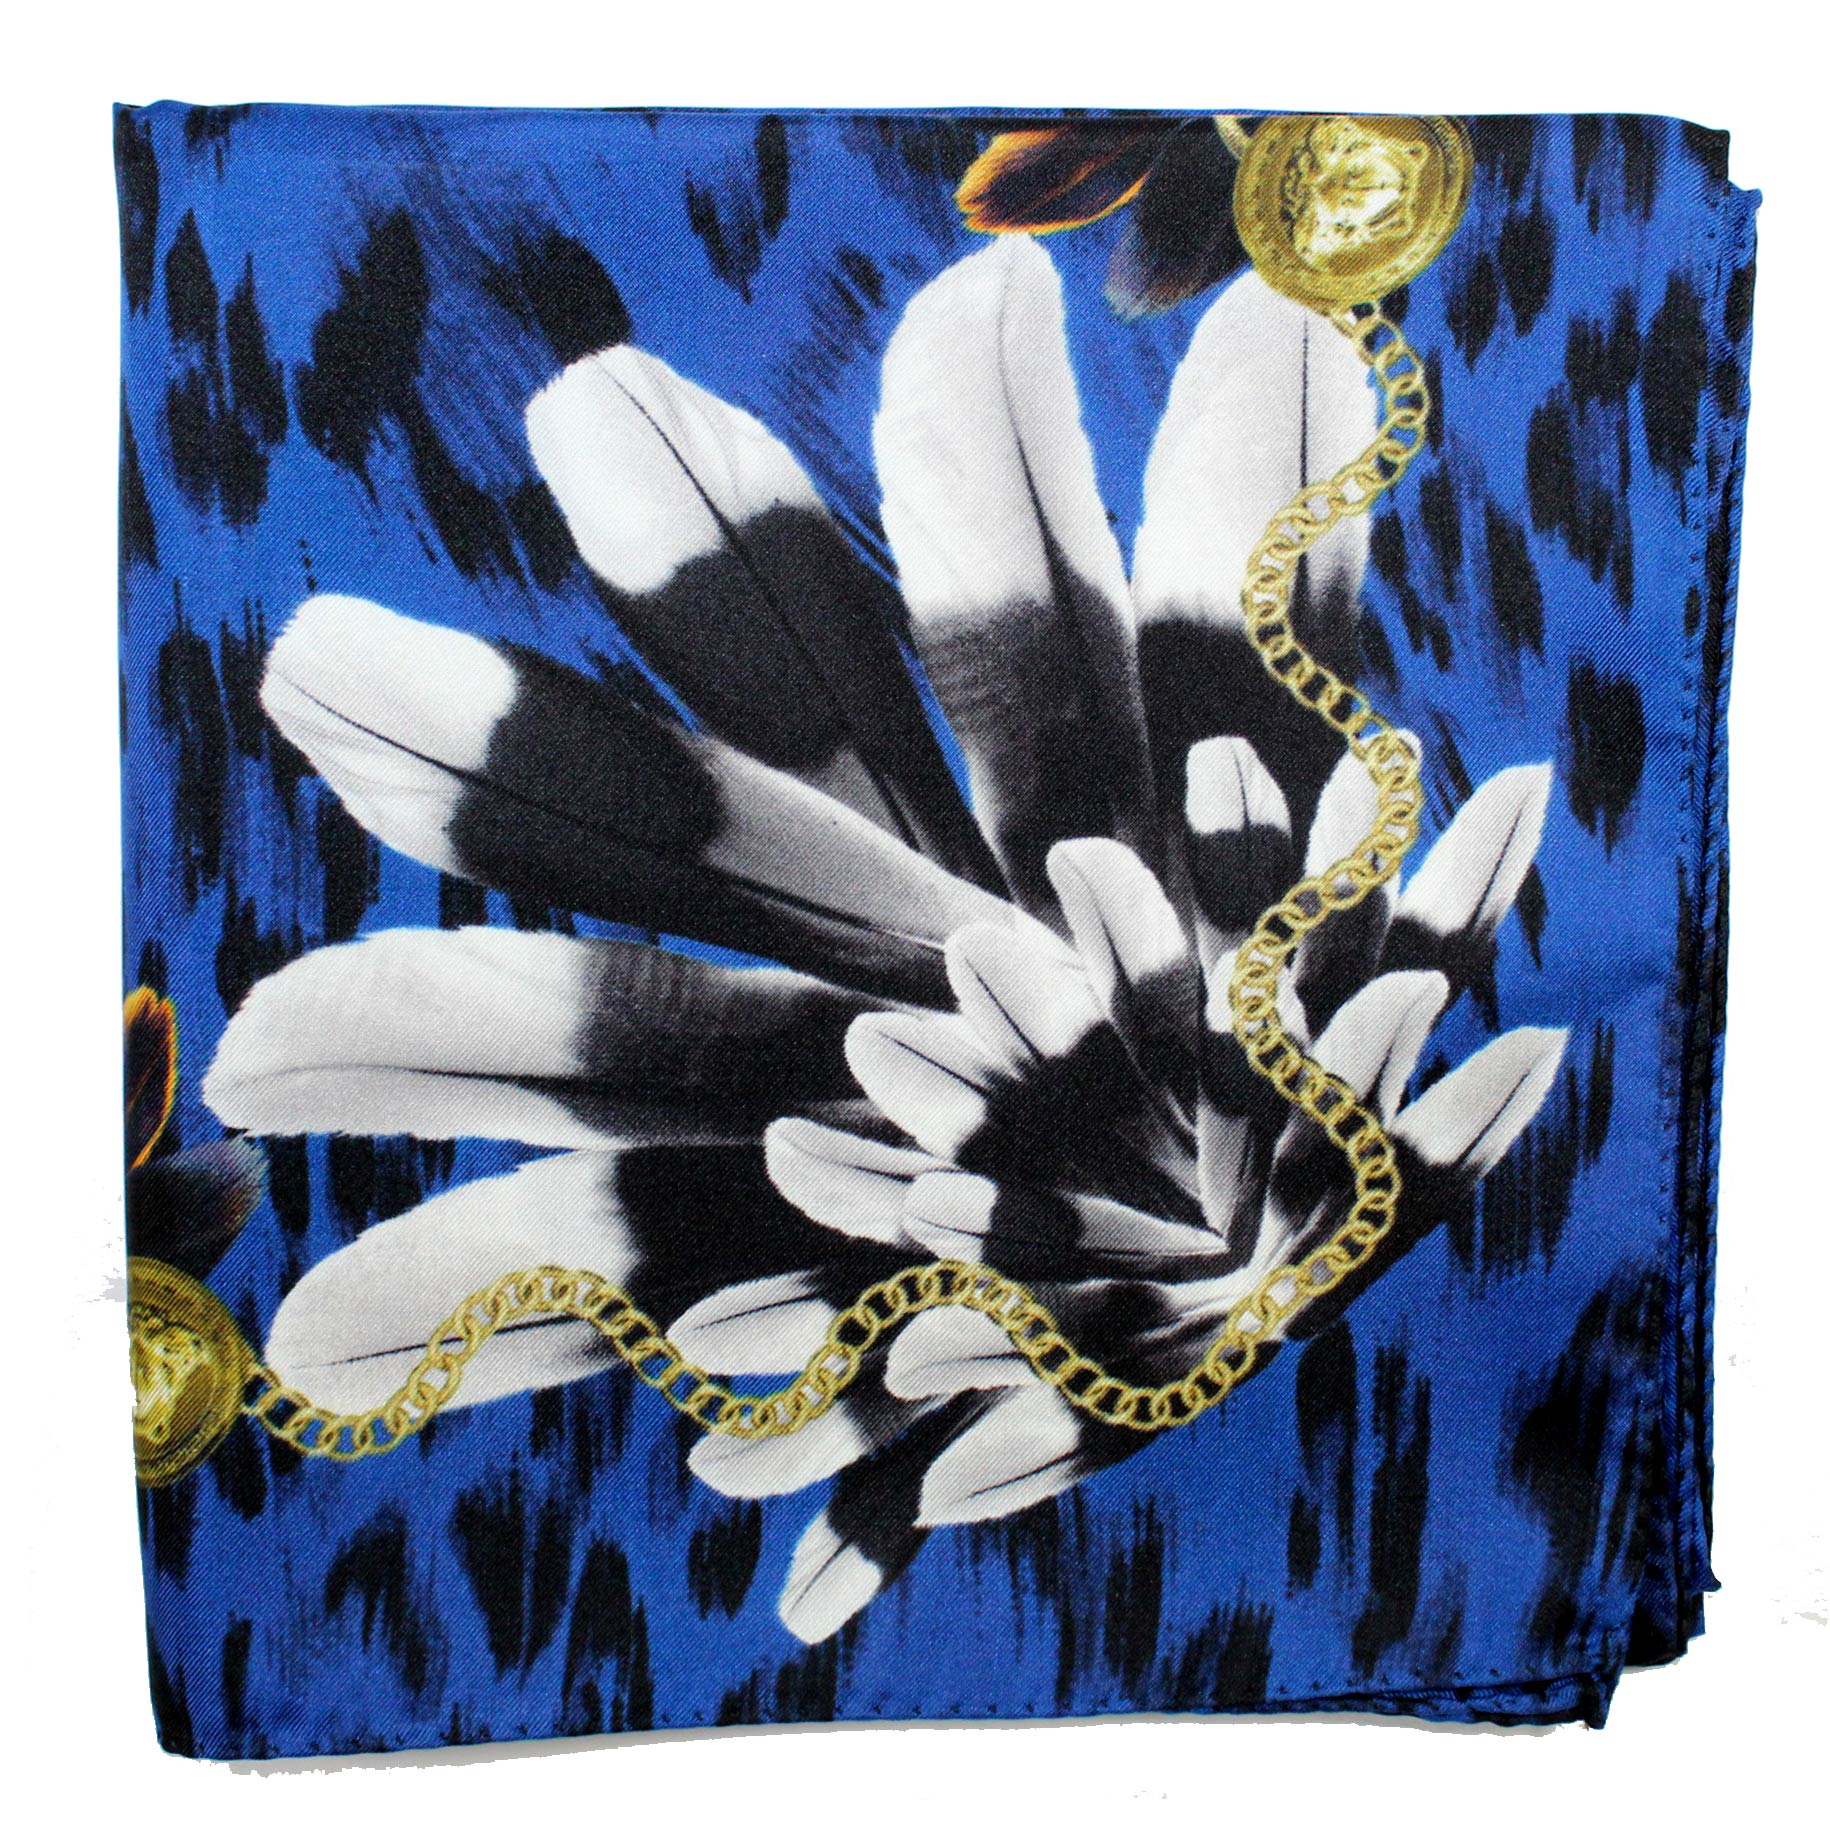 Versace Scarf Royal Blue Feather Headdress Design